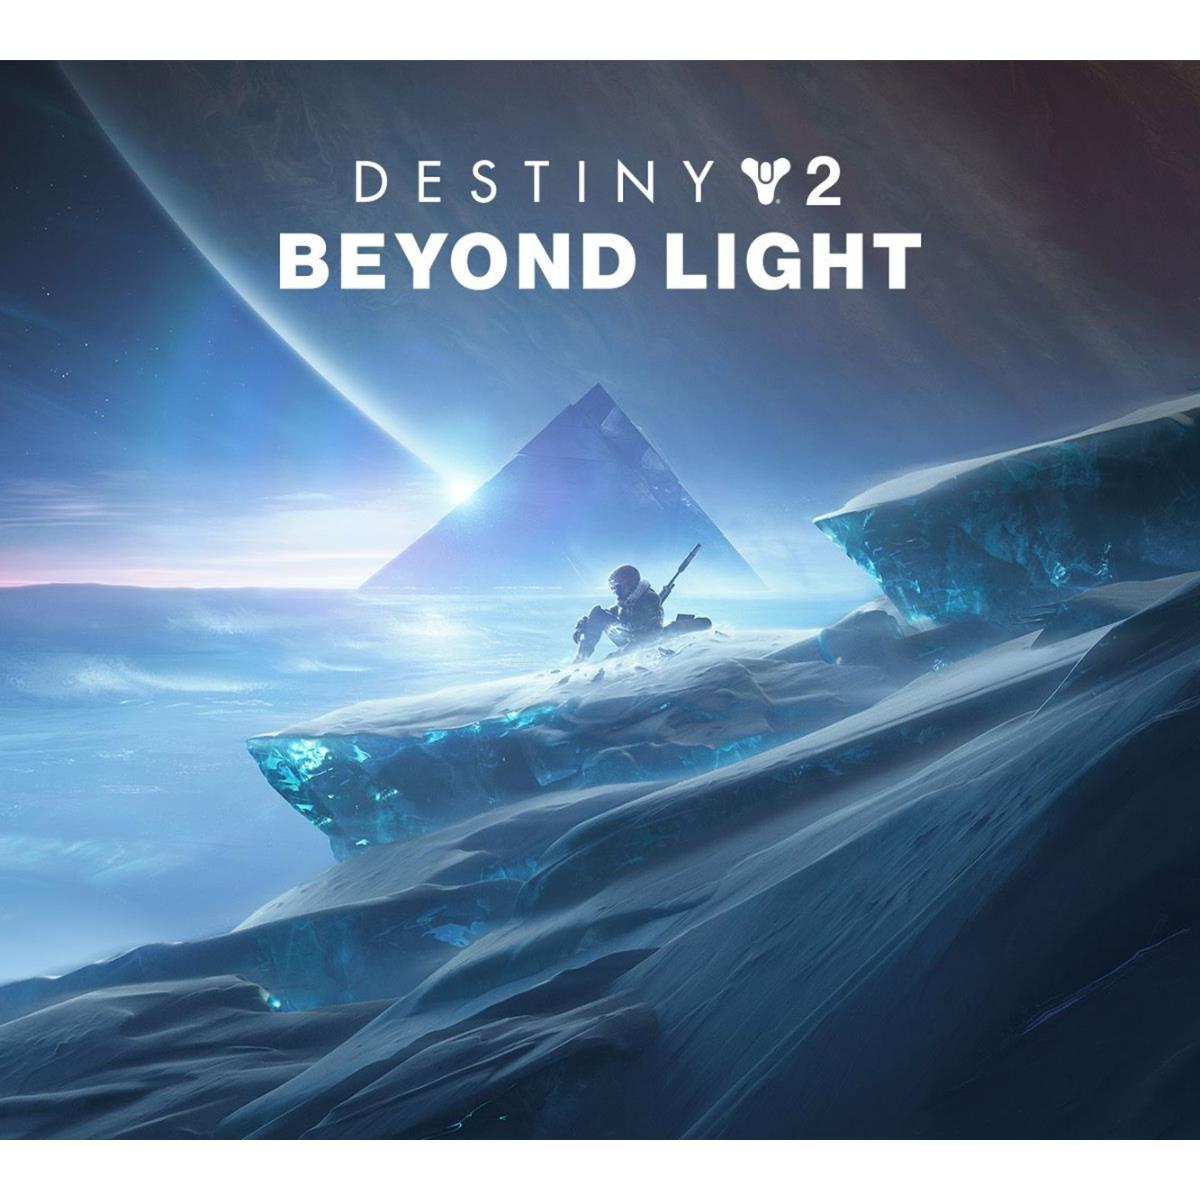 destiny 2 beyond light review